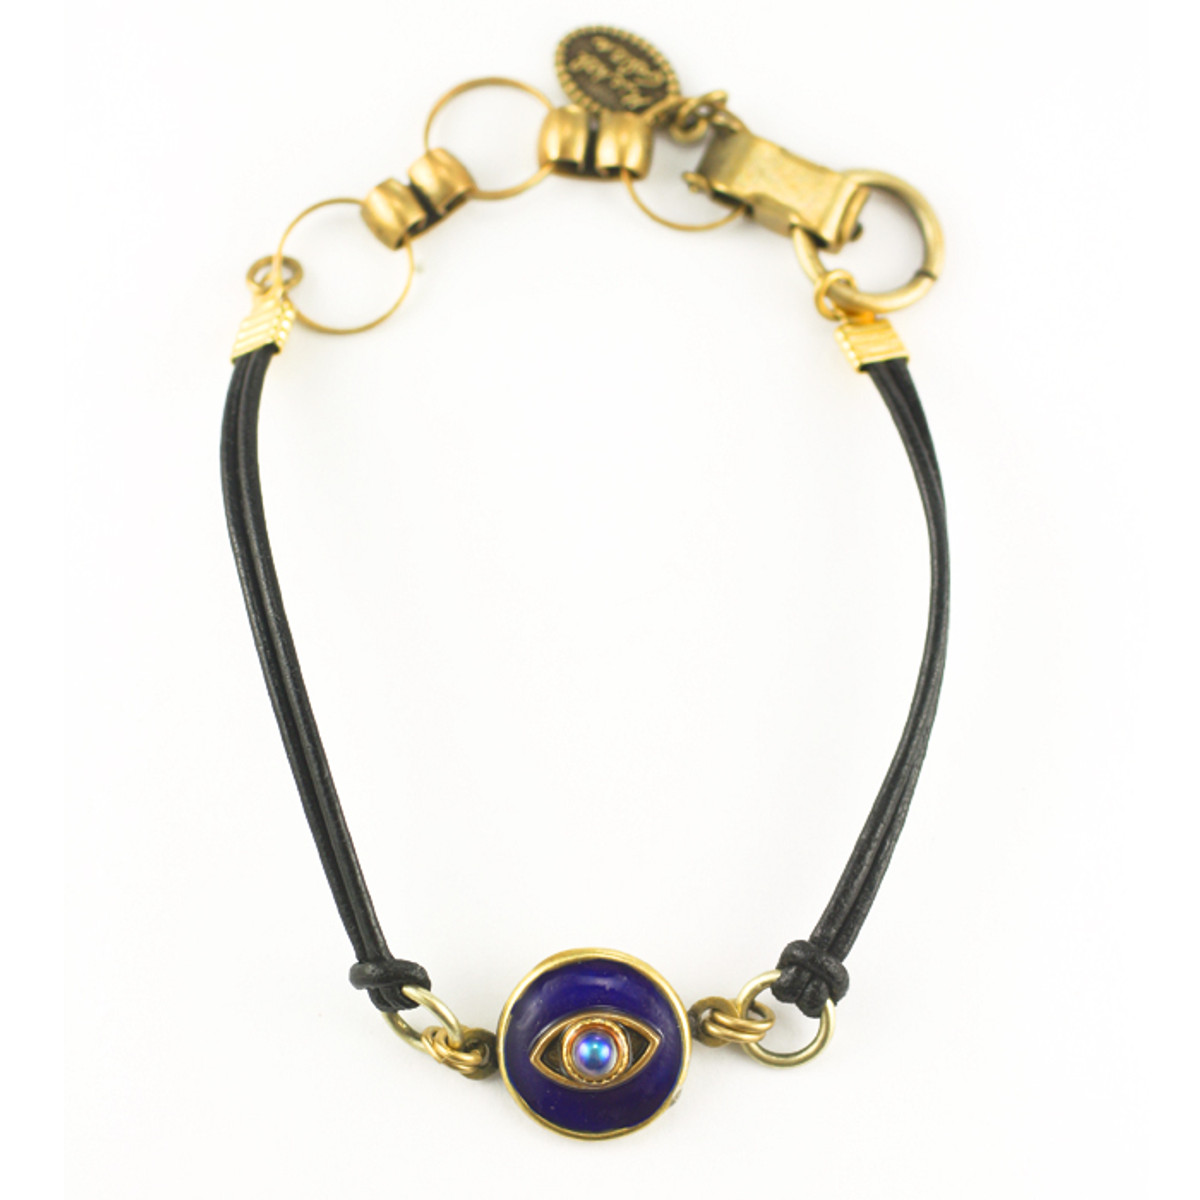 Evil Eye Bracelet - Michal Golan Bracelet - Dark Blue, Small Round Pendant With Crystal Centered Eye